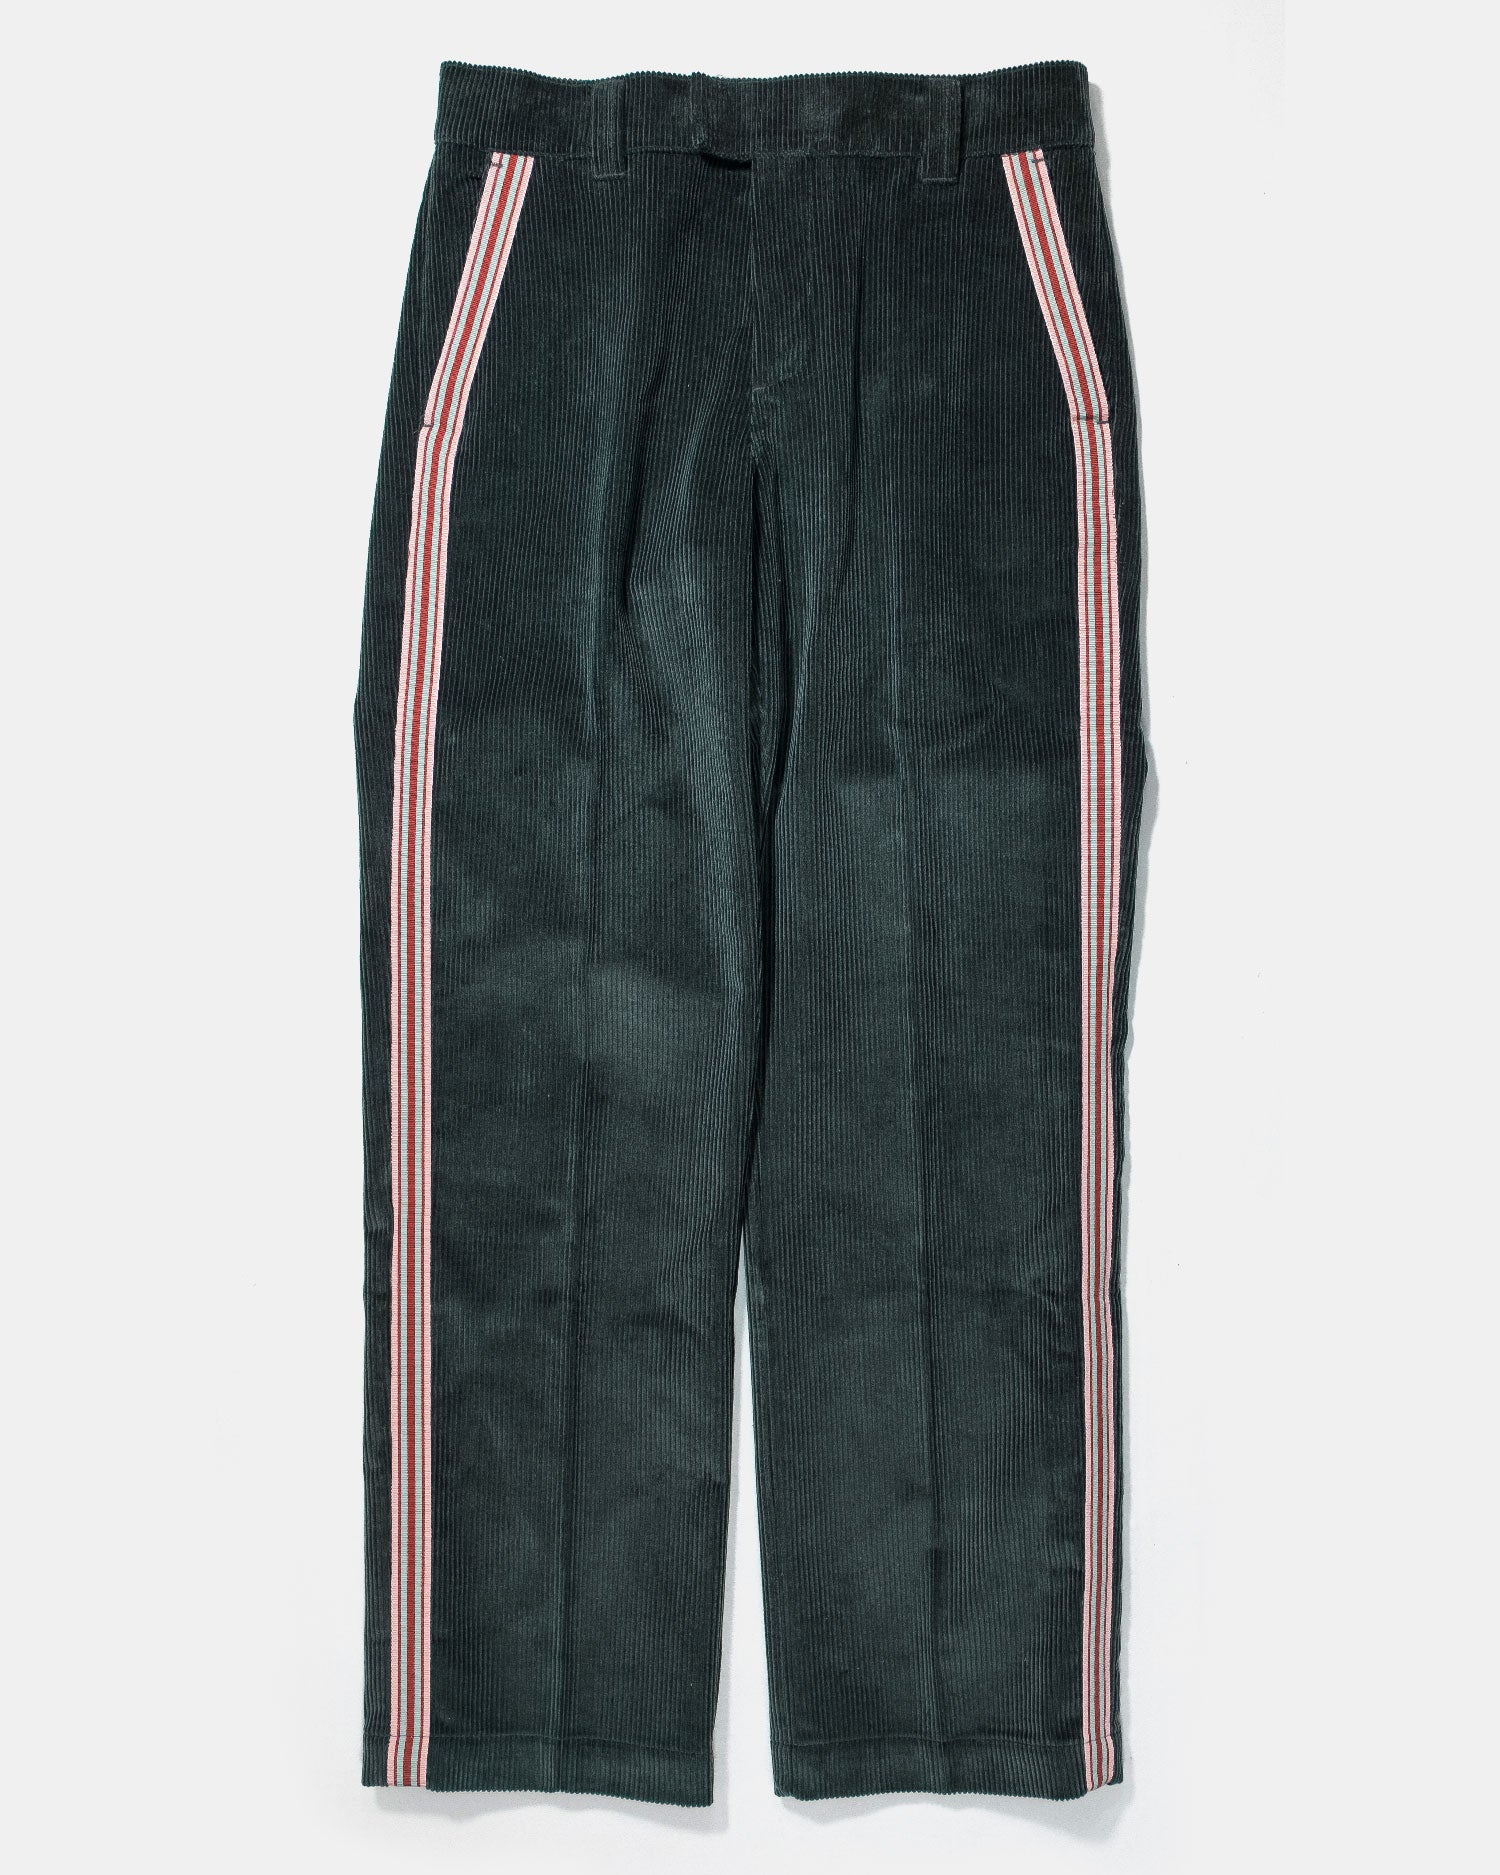 Soulland Greco Corduroy Trousers Green